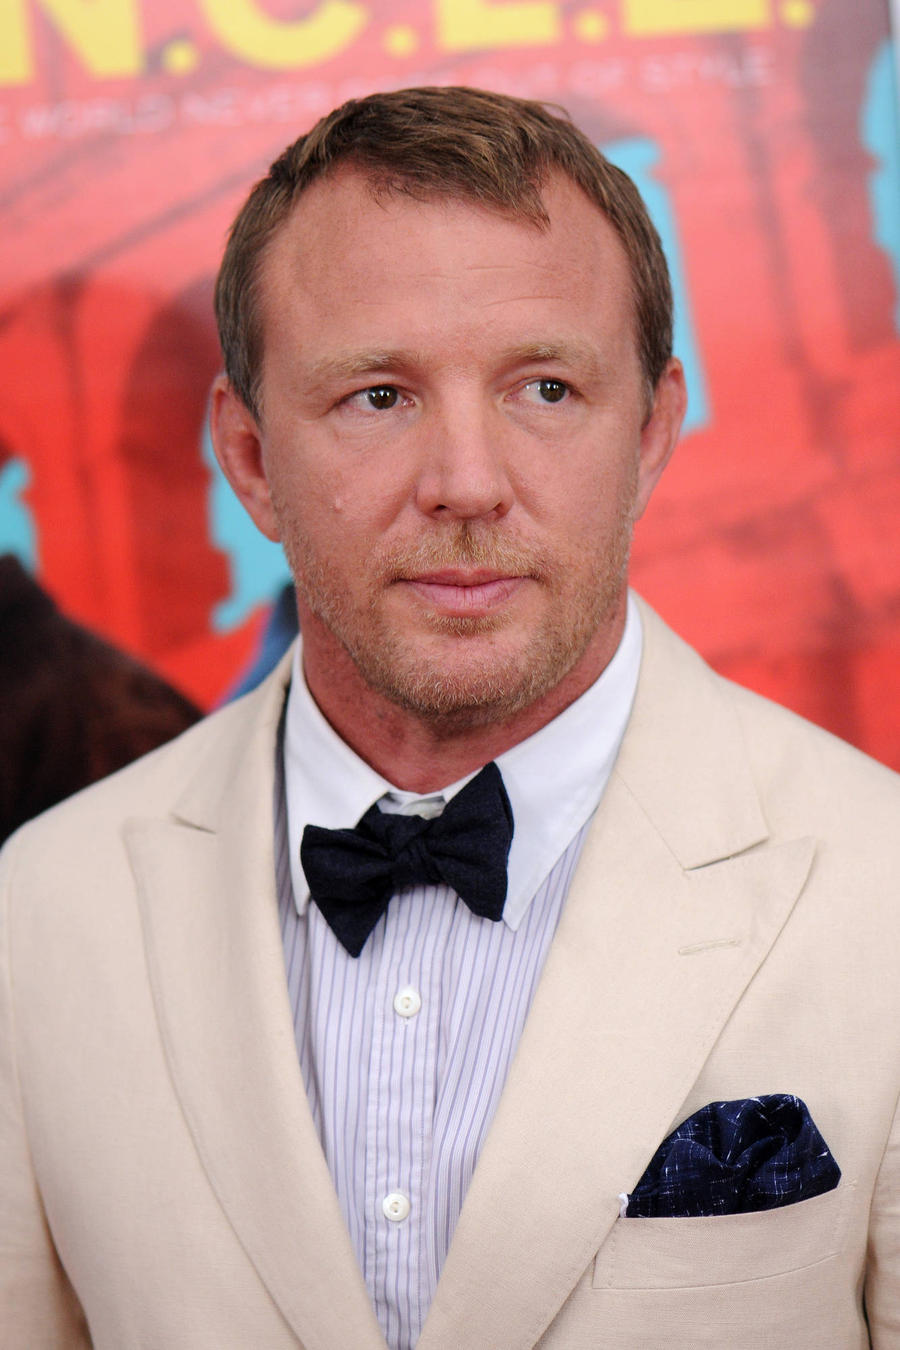 Guy Ritchie/madonna Custody Battle Heard In London